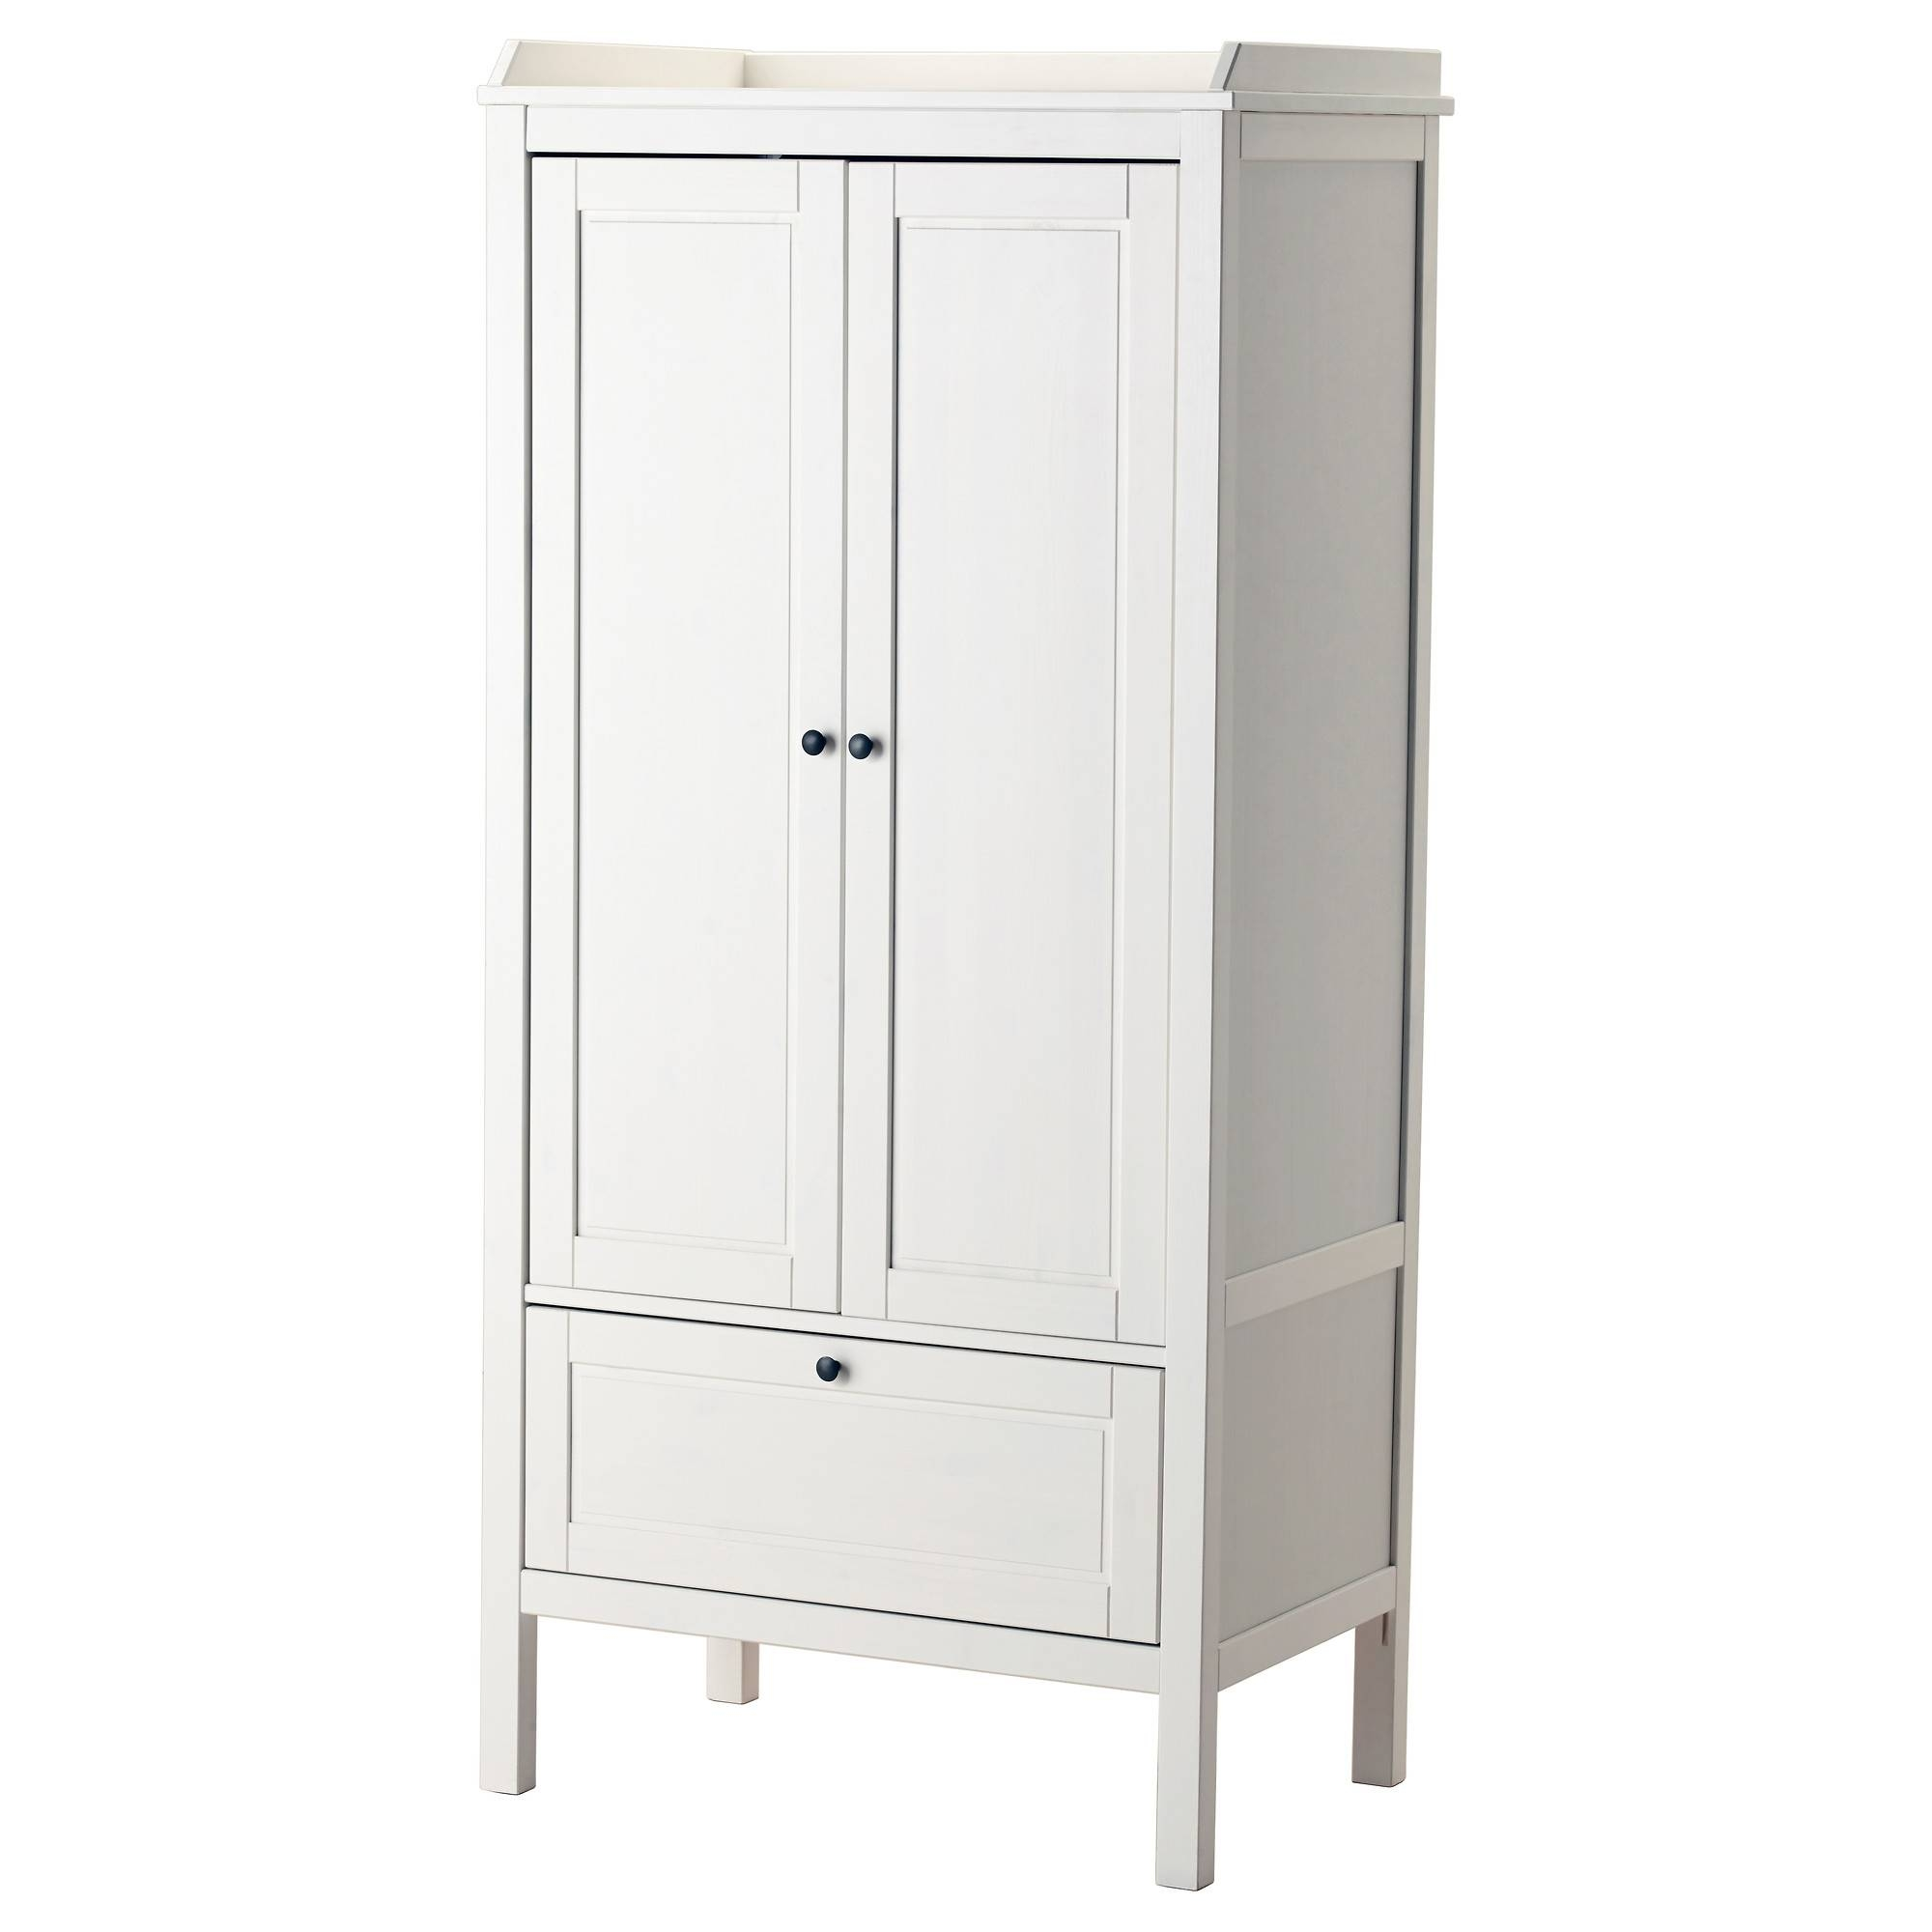 Children's Wardrobes - Nursery Wardrobes - Ikea pertaining to Single White Wardrobes With Drawers (Image 3 of 15)